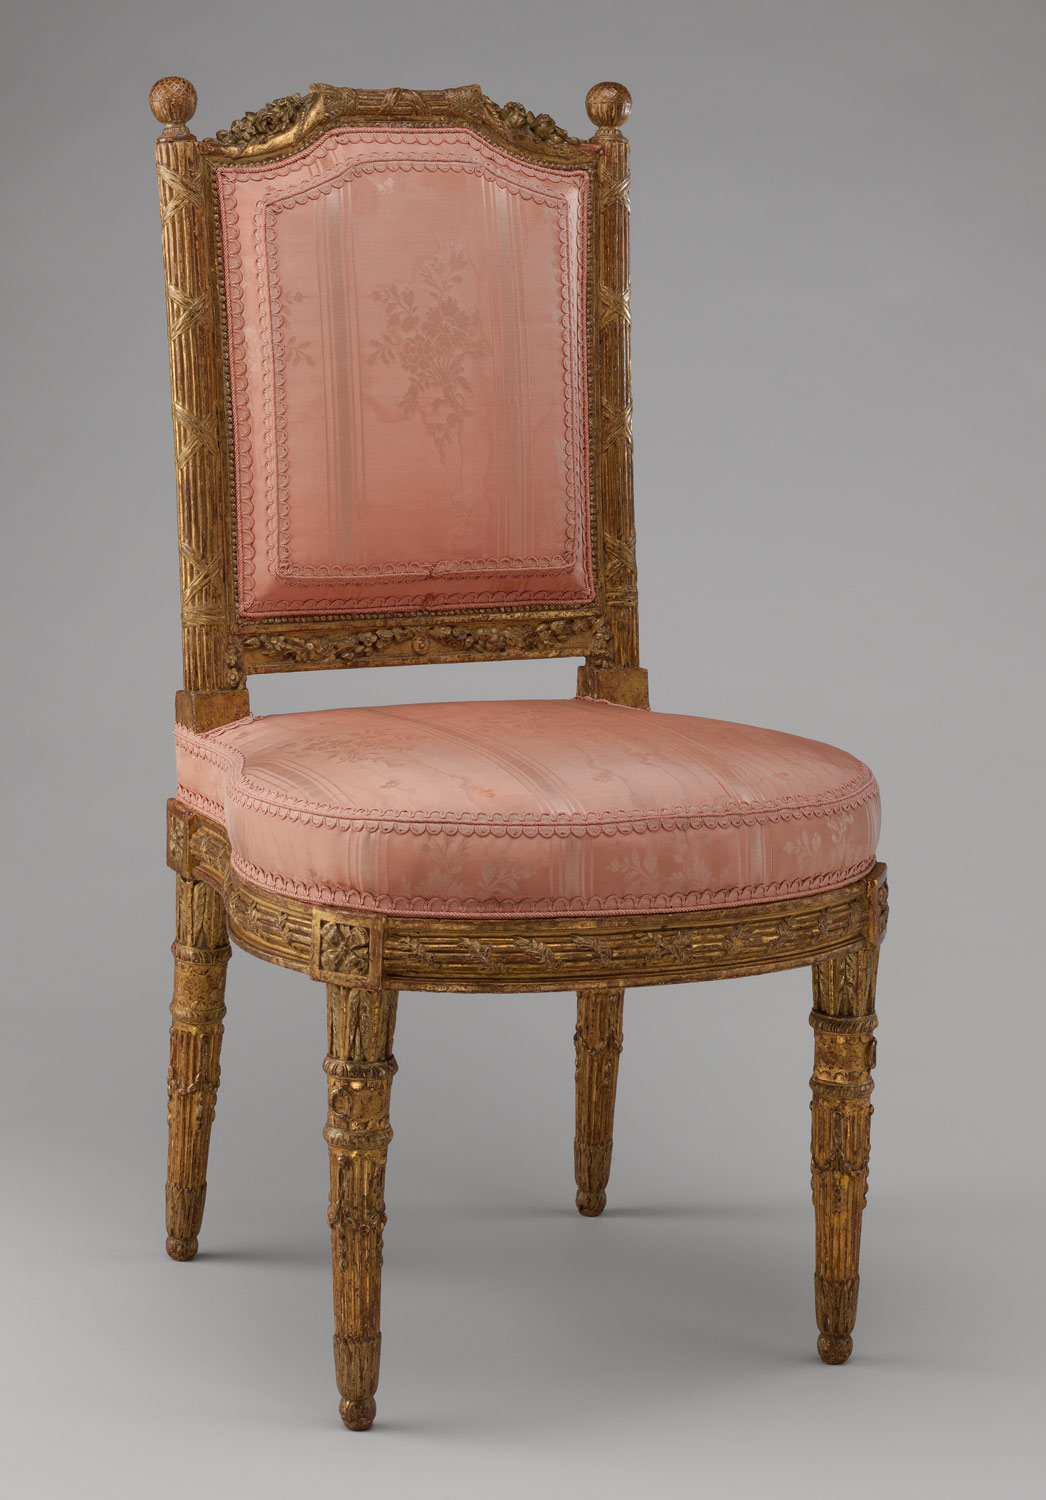 French Furniture in the Eighteenth Century: Seat Furniture | Essay ...